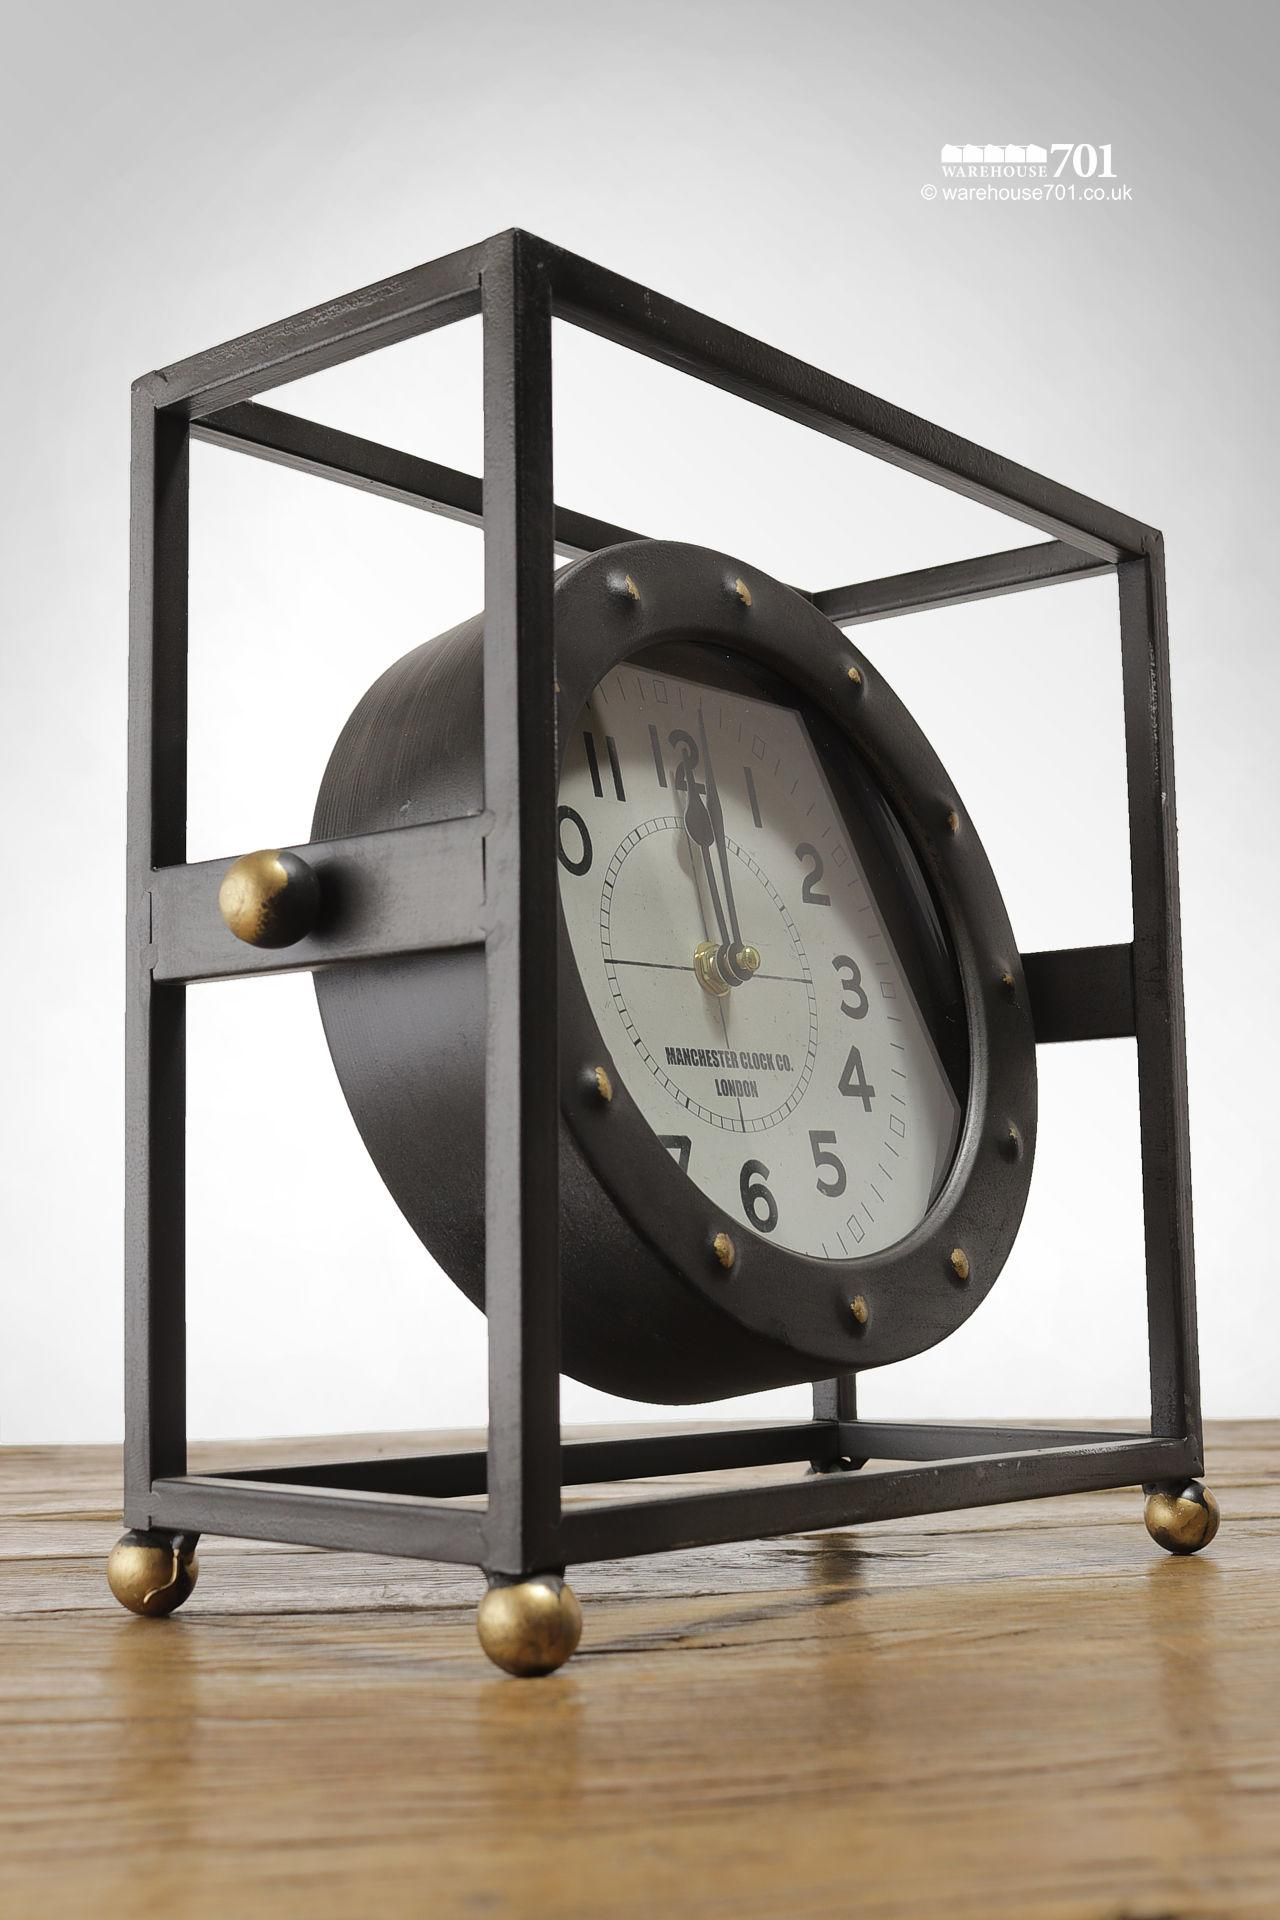 New Pivoting Framed or Cradled Industrial Style Freestanding Clock #4